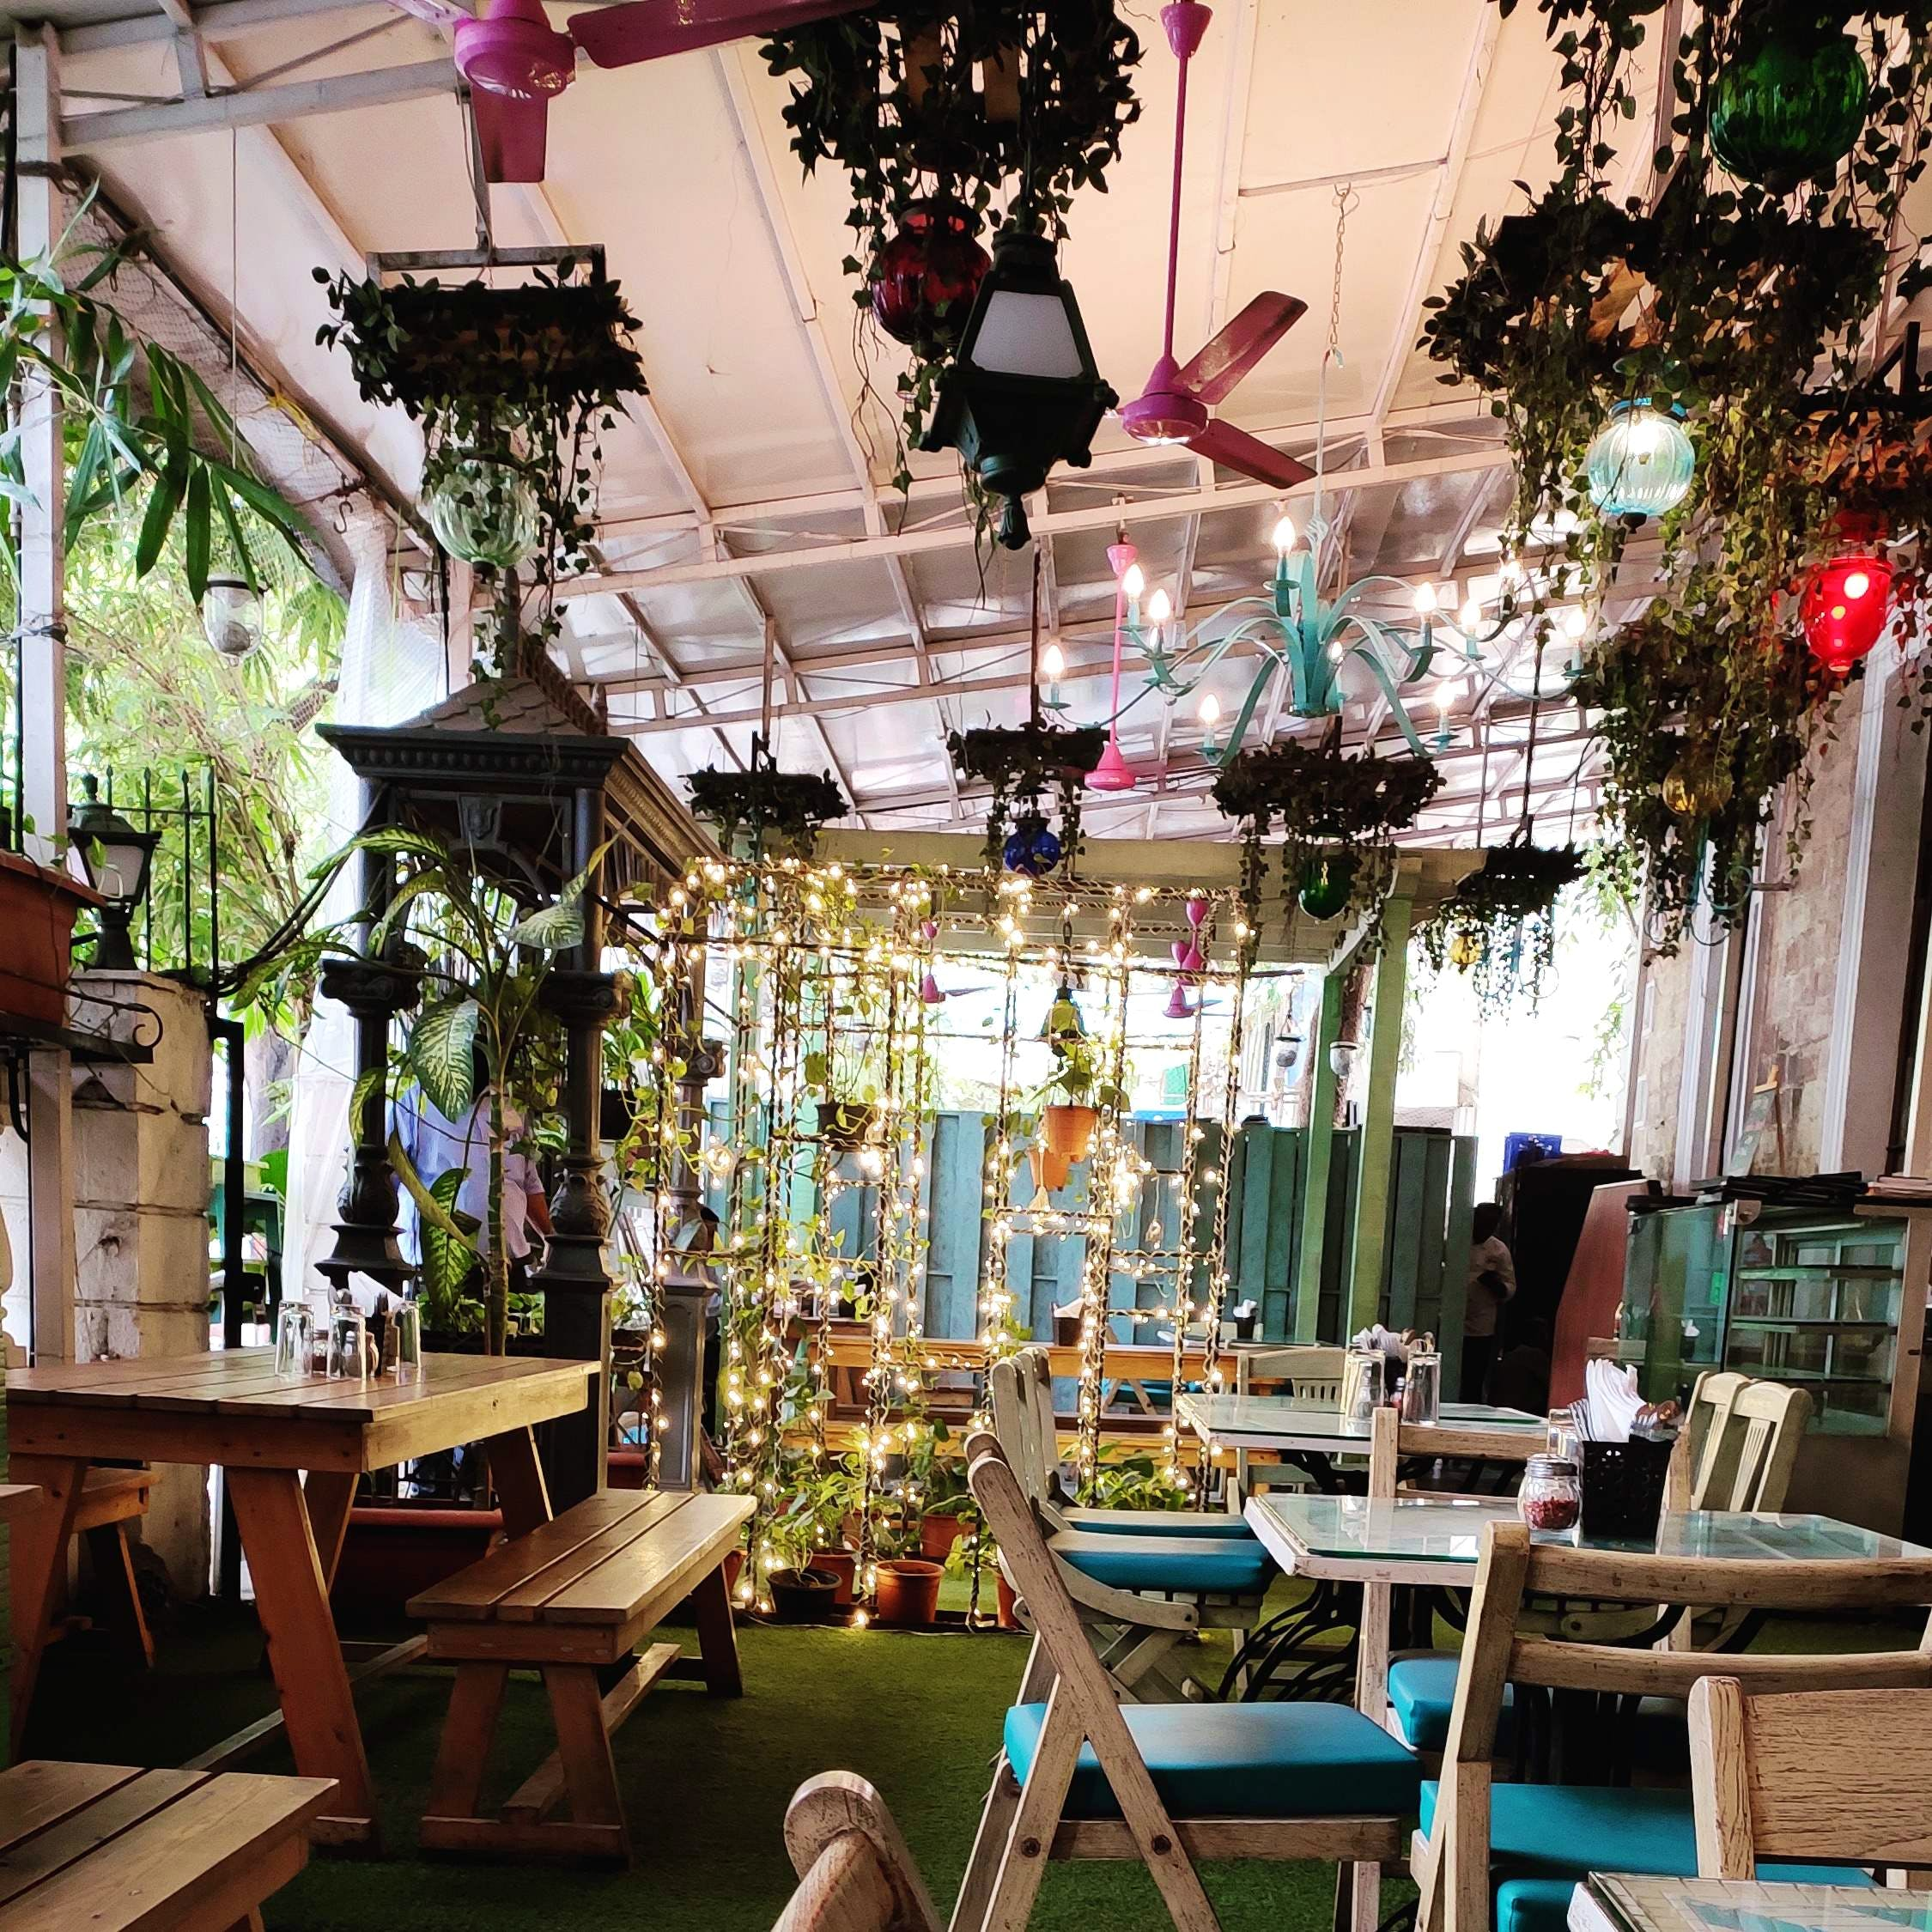 This Prettiest Cafe In Town Serves Some Delicious Comfort Food